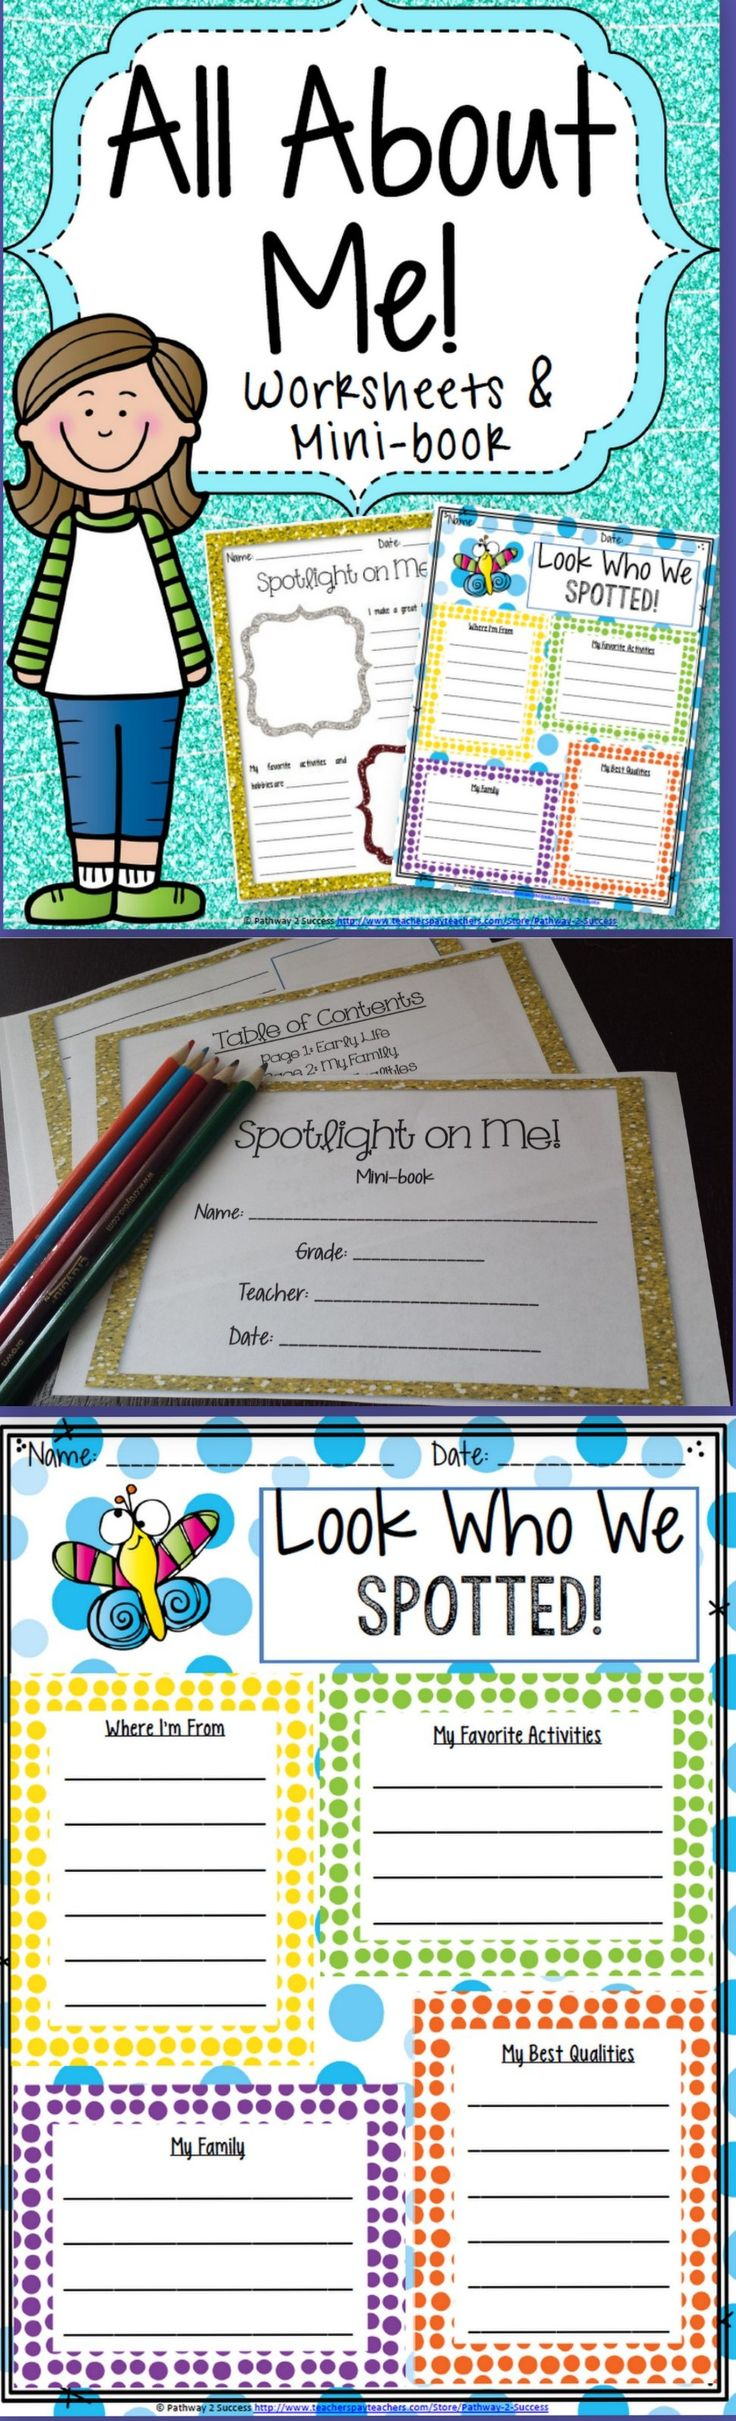 worksheet All About Me Middle School Worksheet all about me worksheets and mini book school back to book